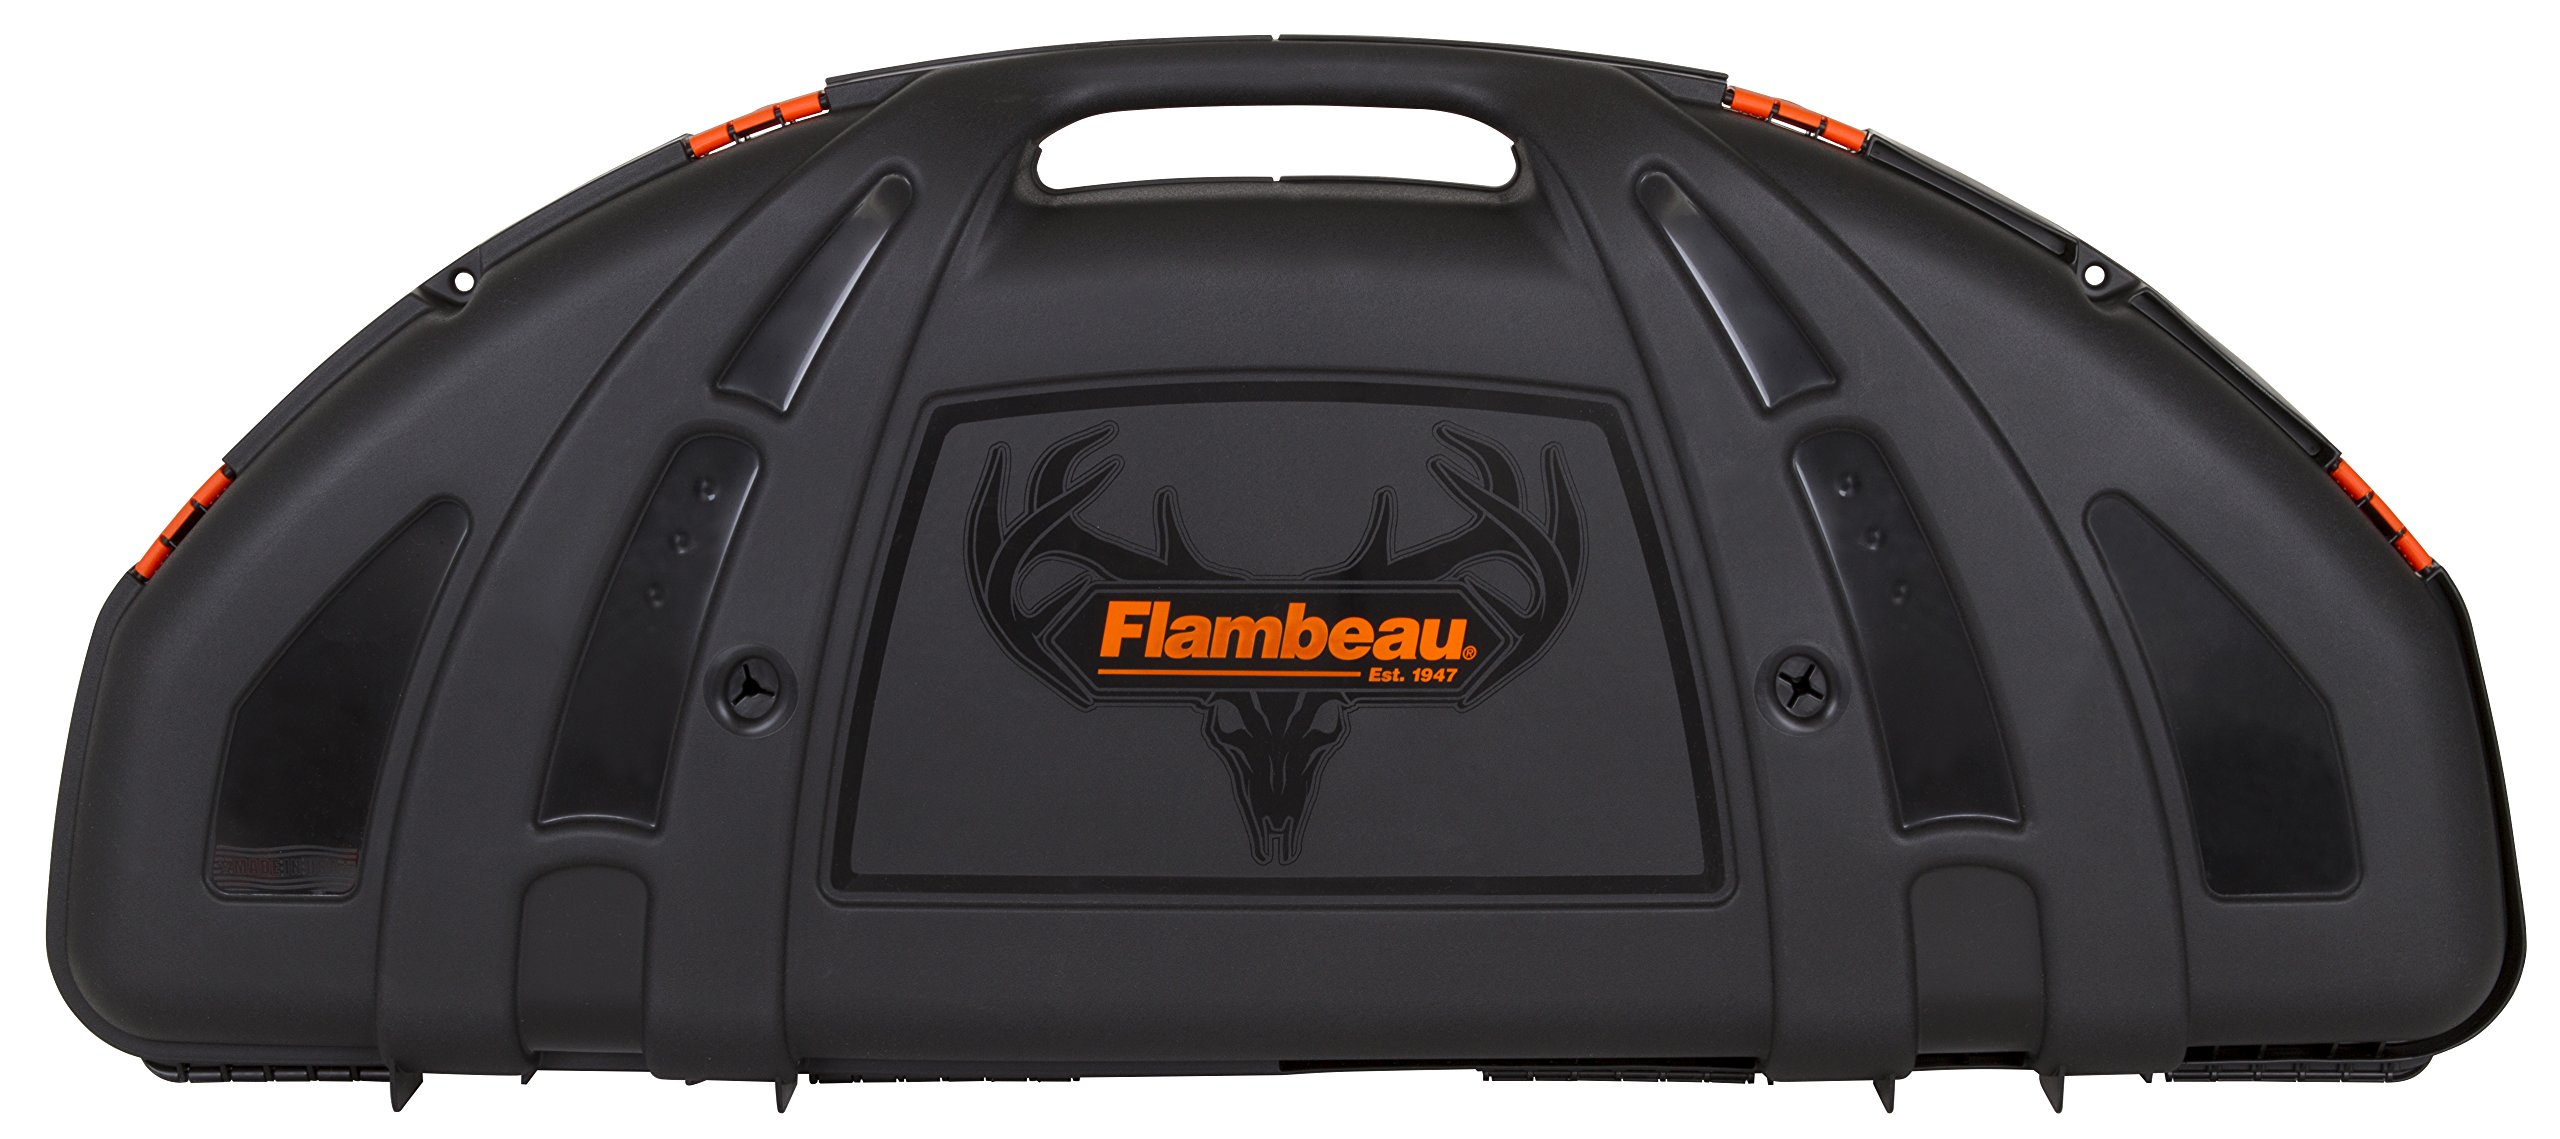 Flambeau Outdoors 6460SC Safeshot Compound Bow Case